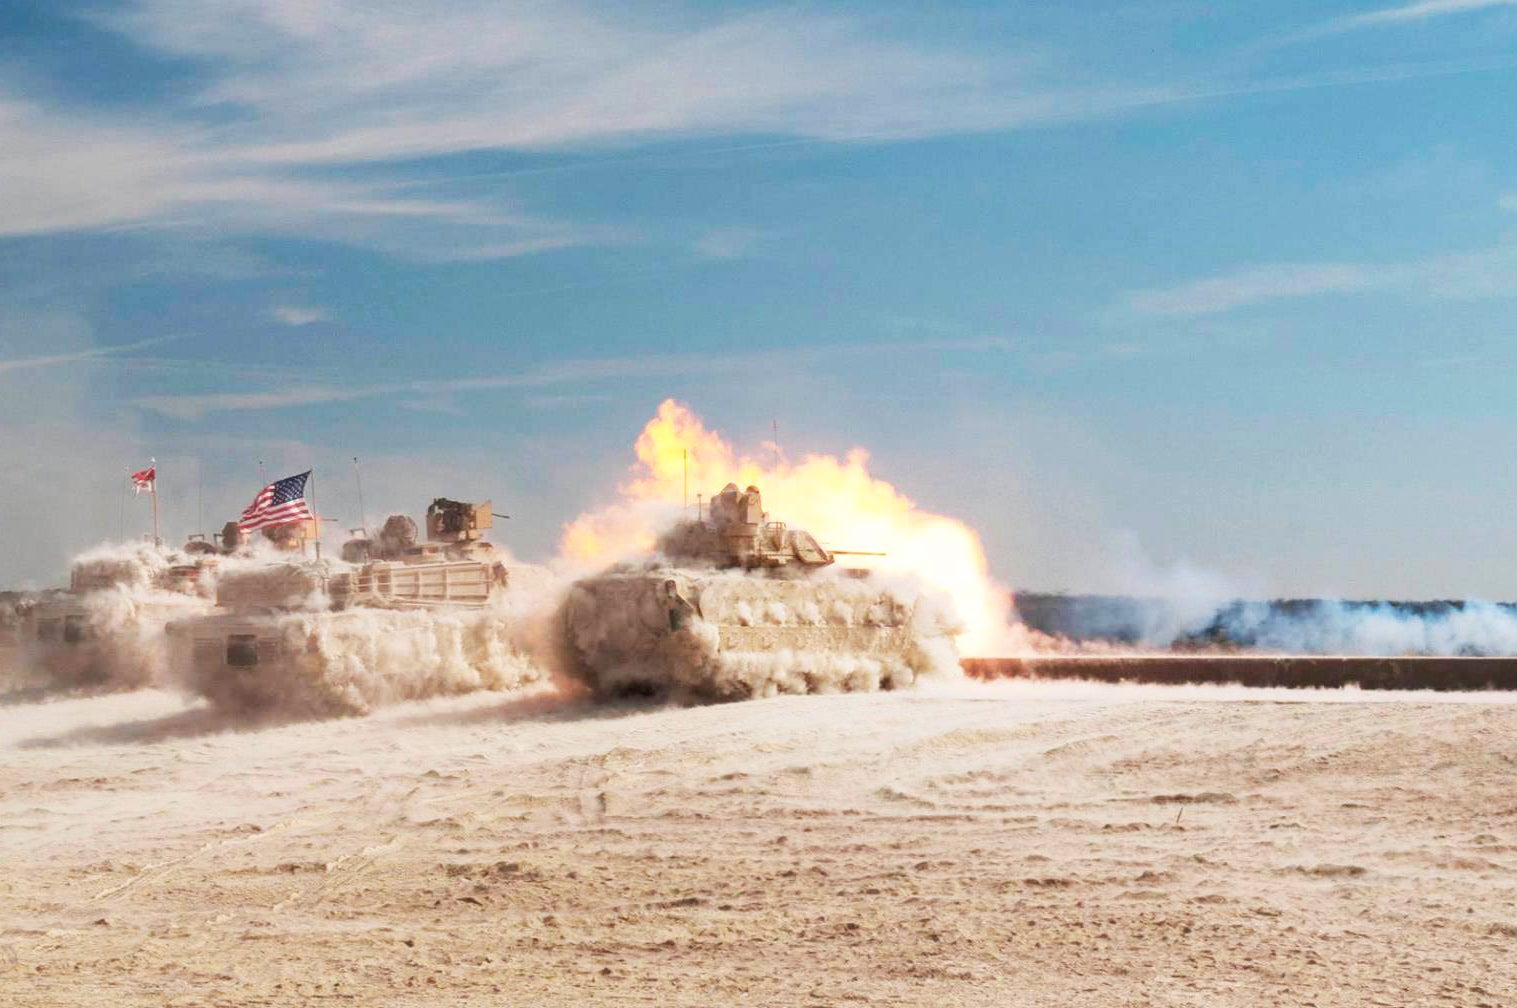 Amazing photo of M1 Abram tanks surrounded in a force field of dust after firing its cannon